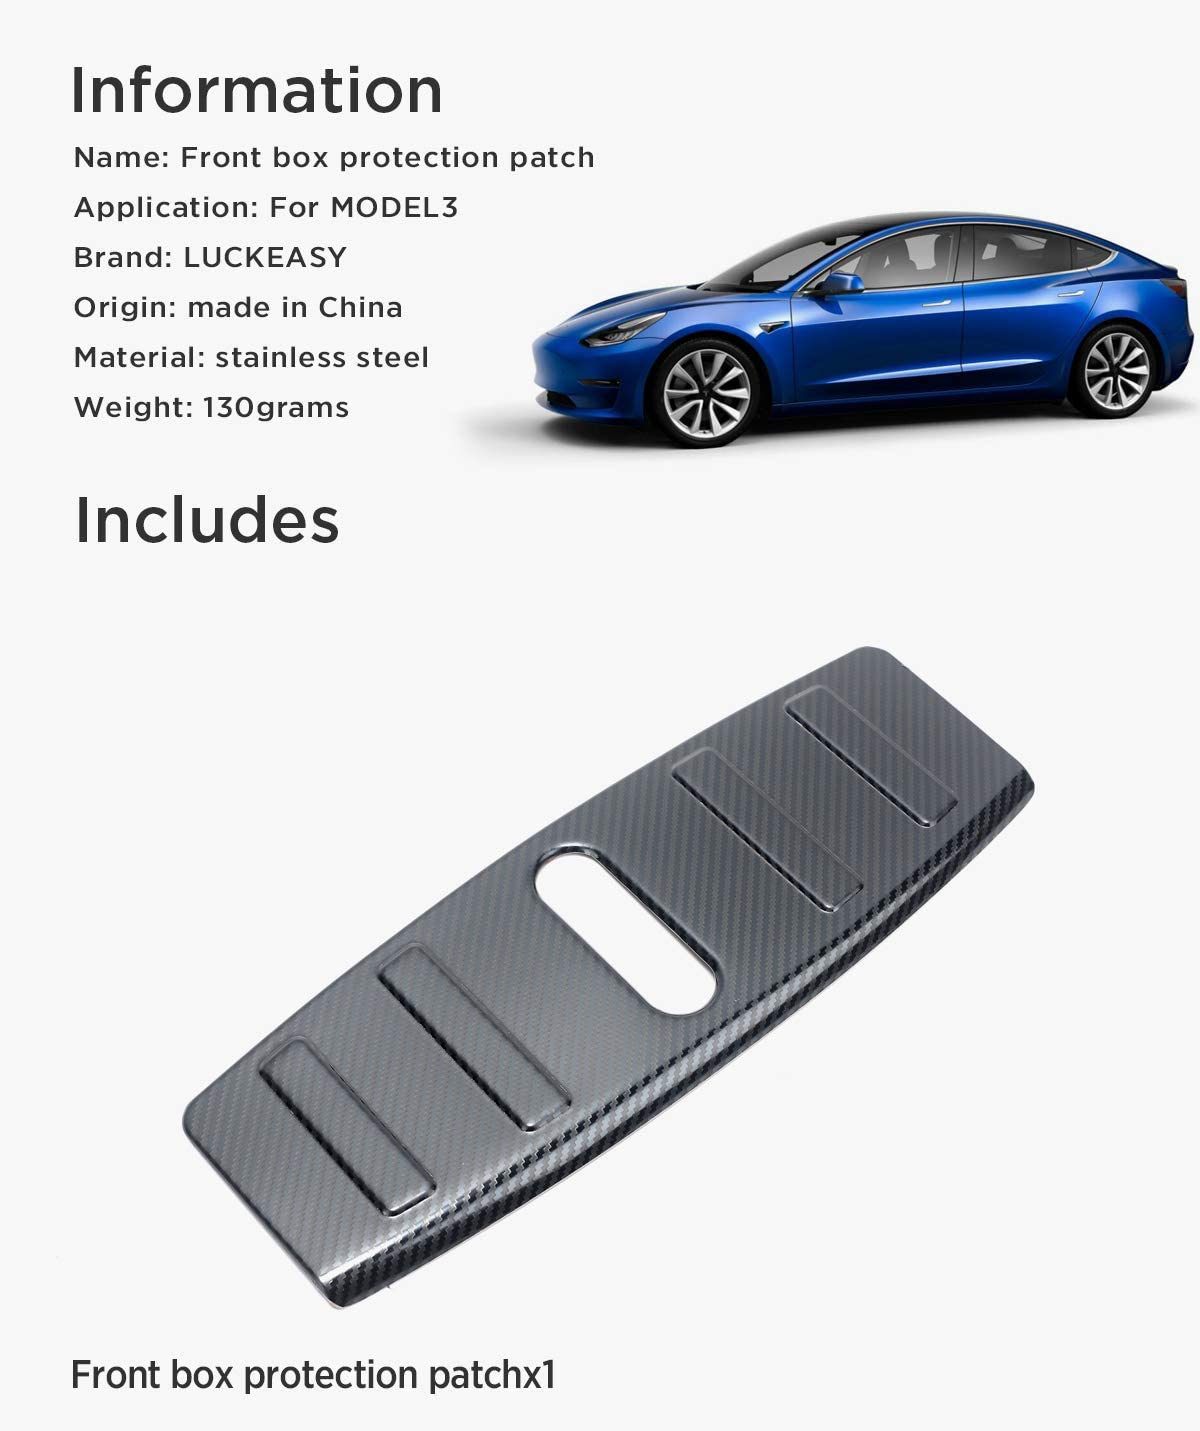 LUCKEASY Front Engine Trunk Box Luggage Bumper Panel for Tesla Model 3 2017-2020 Custom Fit Front Box Protection Patch Silver